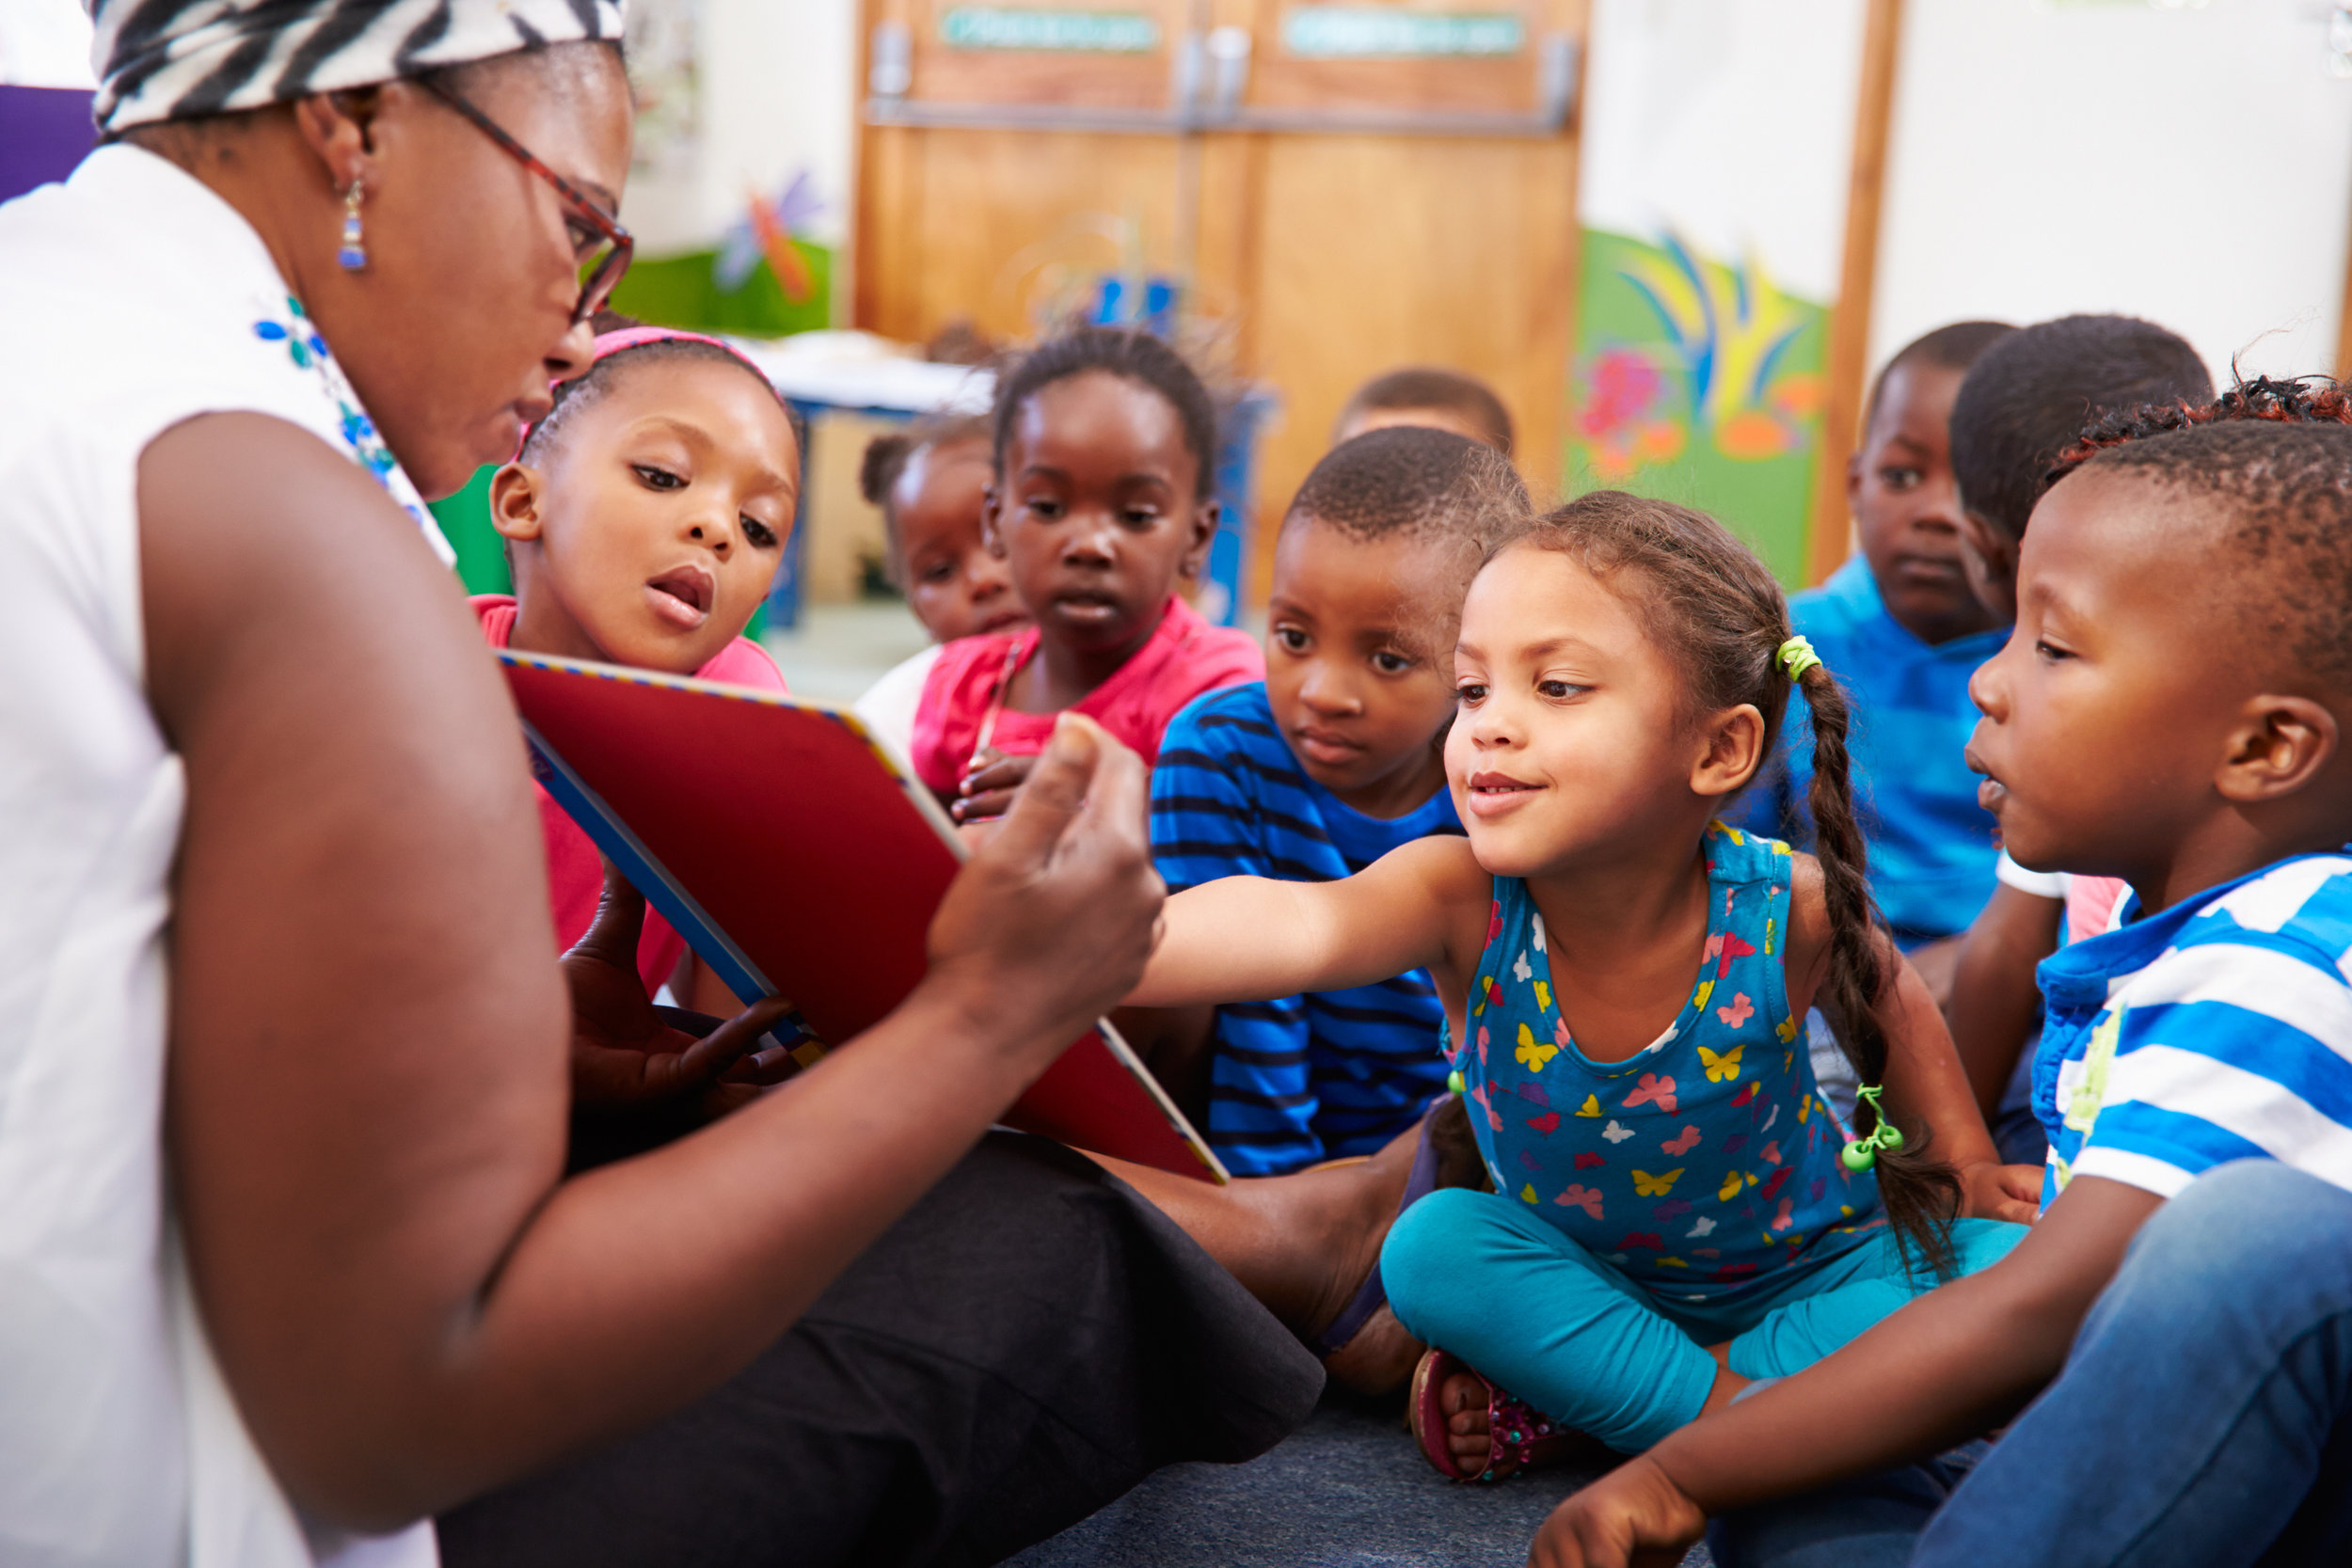 Our Mission - The mission of the School Leadership Center of Greater New Orleans is to improve schools by inspiring and developing instructional leadership among principals and other educators,thereby advancing student achievement.Learn More